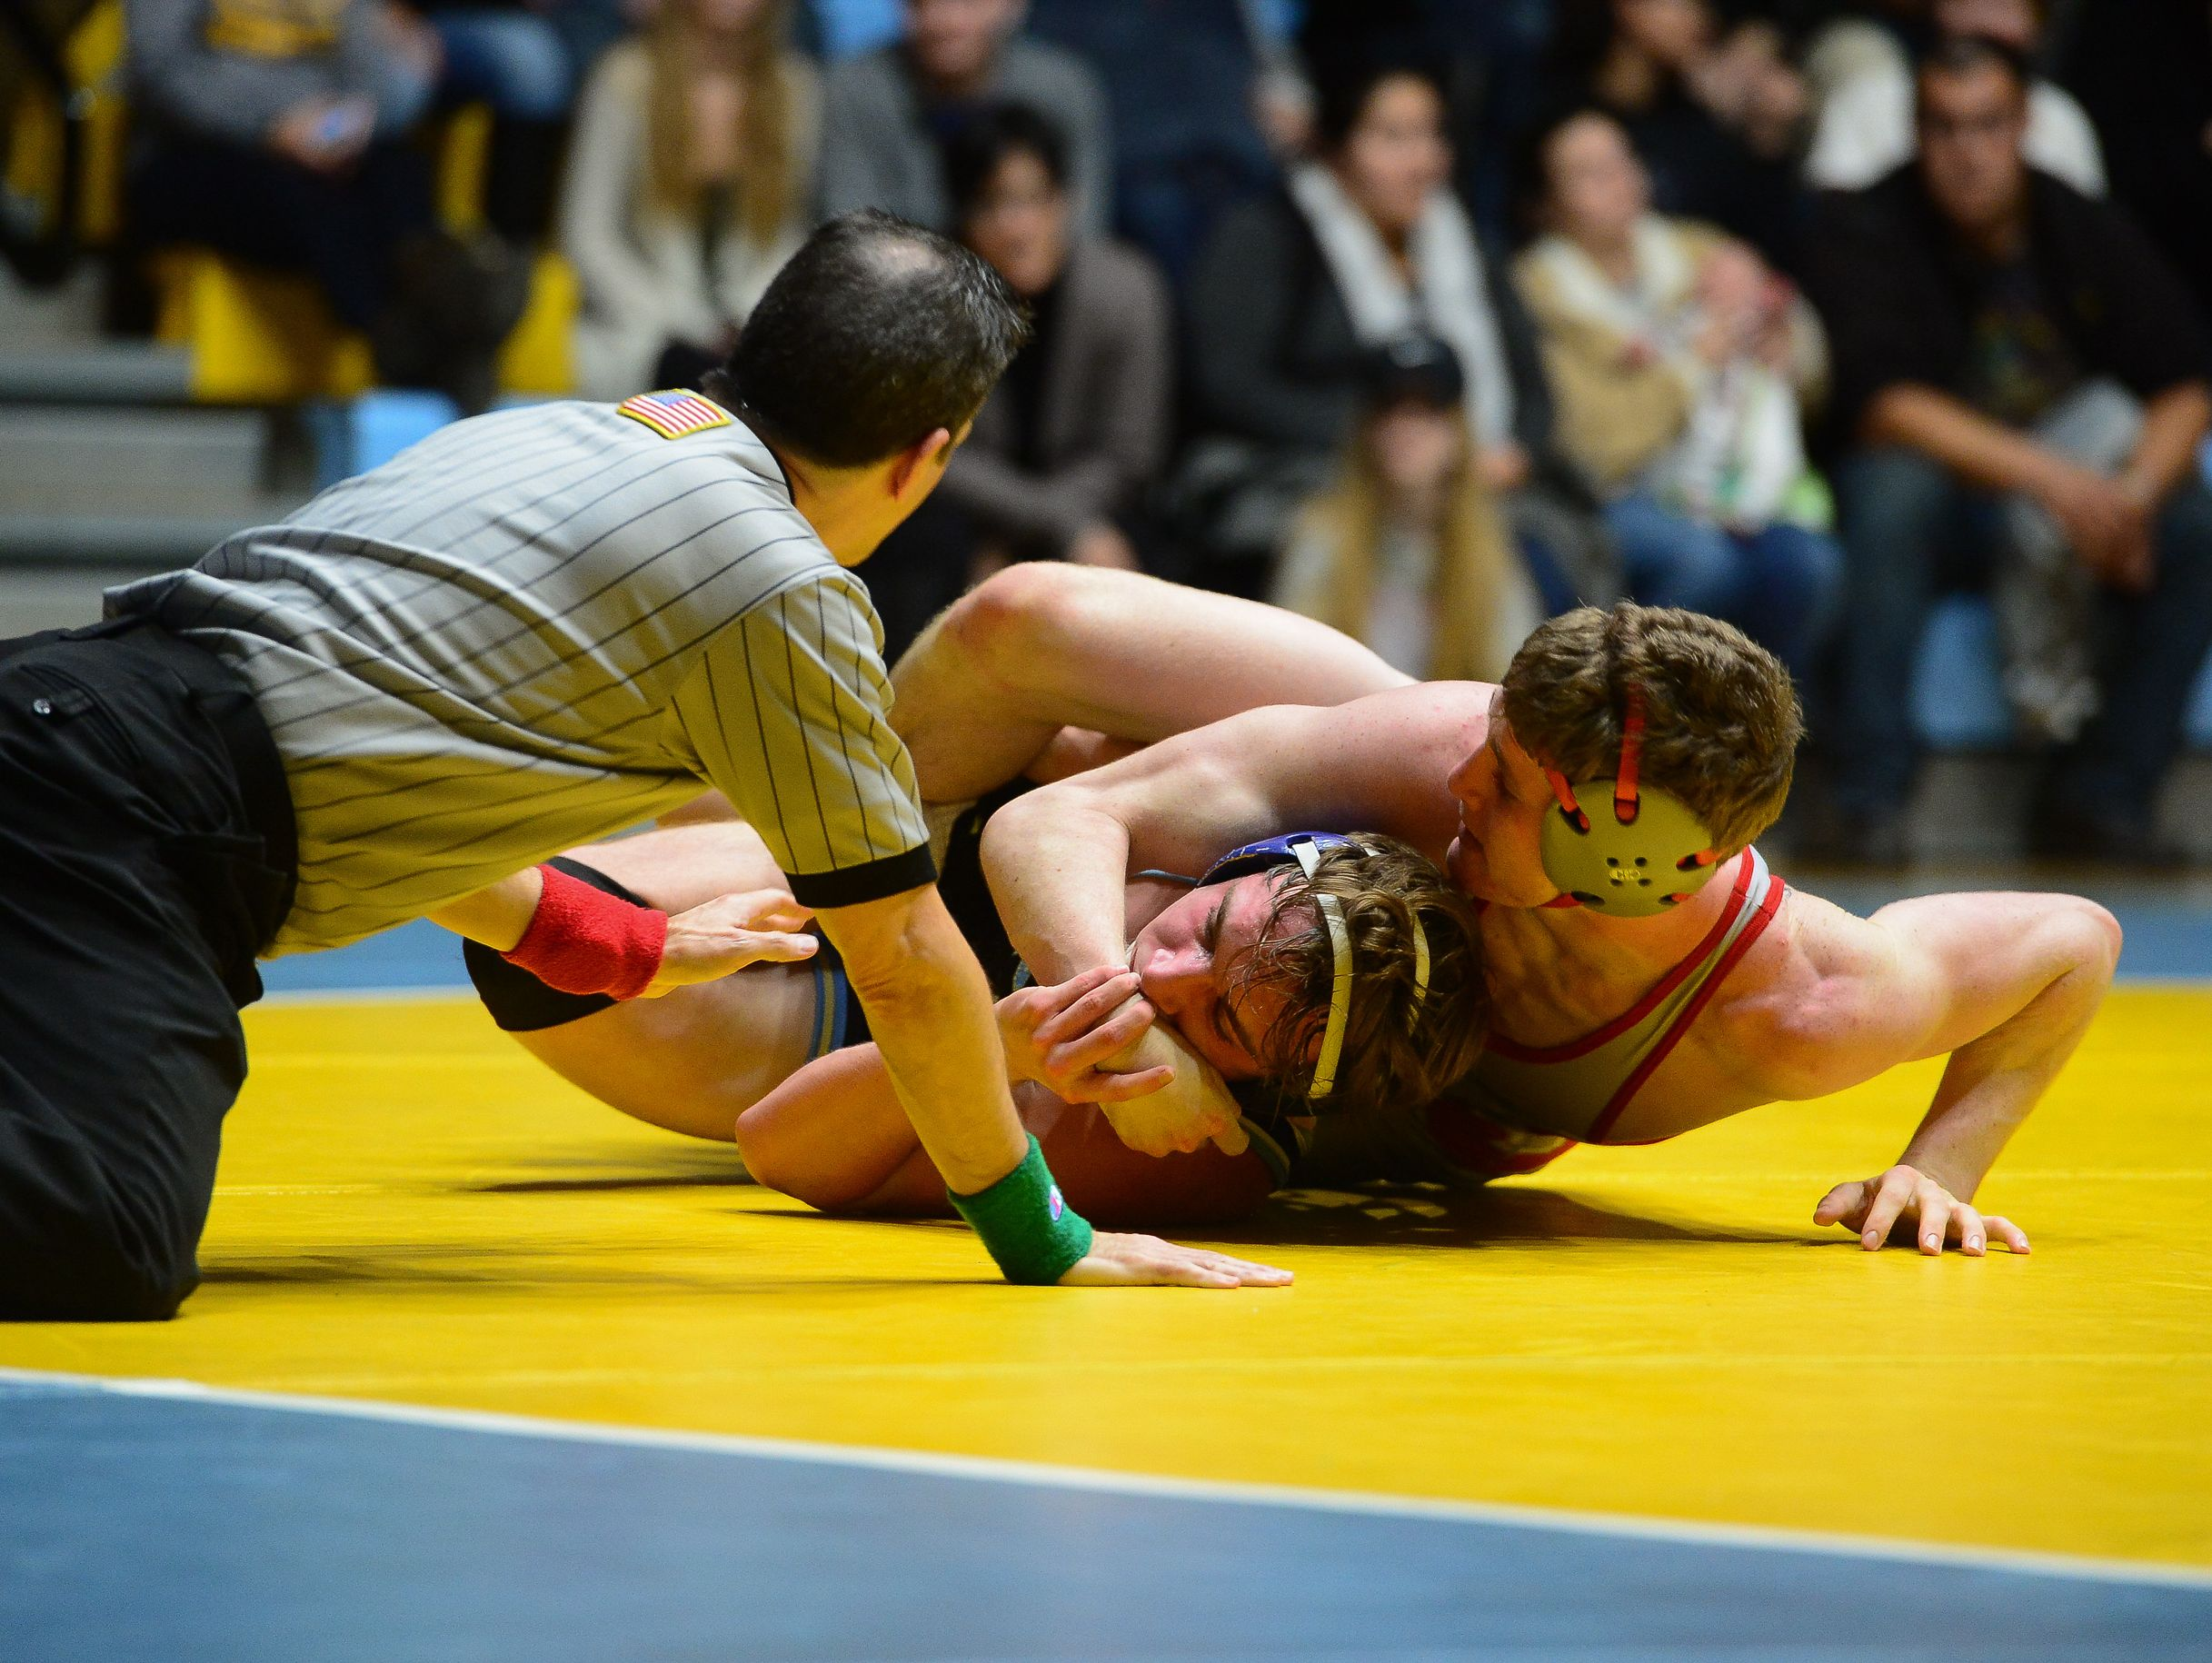 Cape's Zeke Bean matches up against Smyrna's Chase Archangelo during the 145lb match up at Cape Henlopen High School on Wednesday, Jan. 18, 2017.